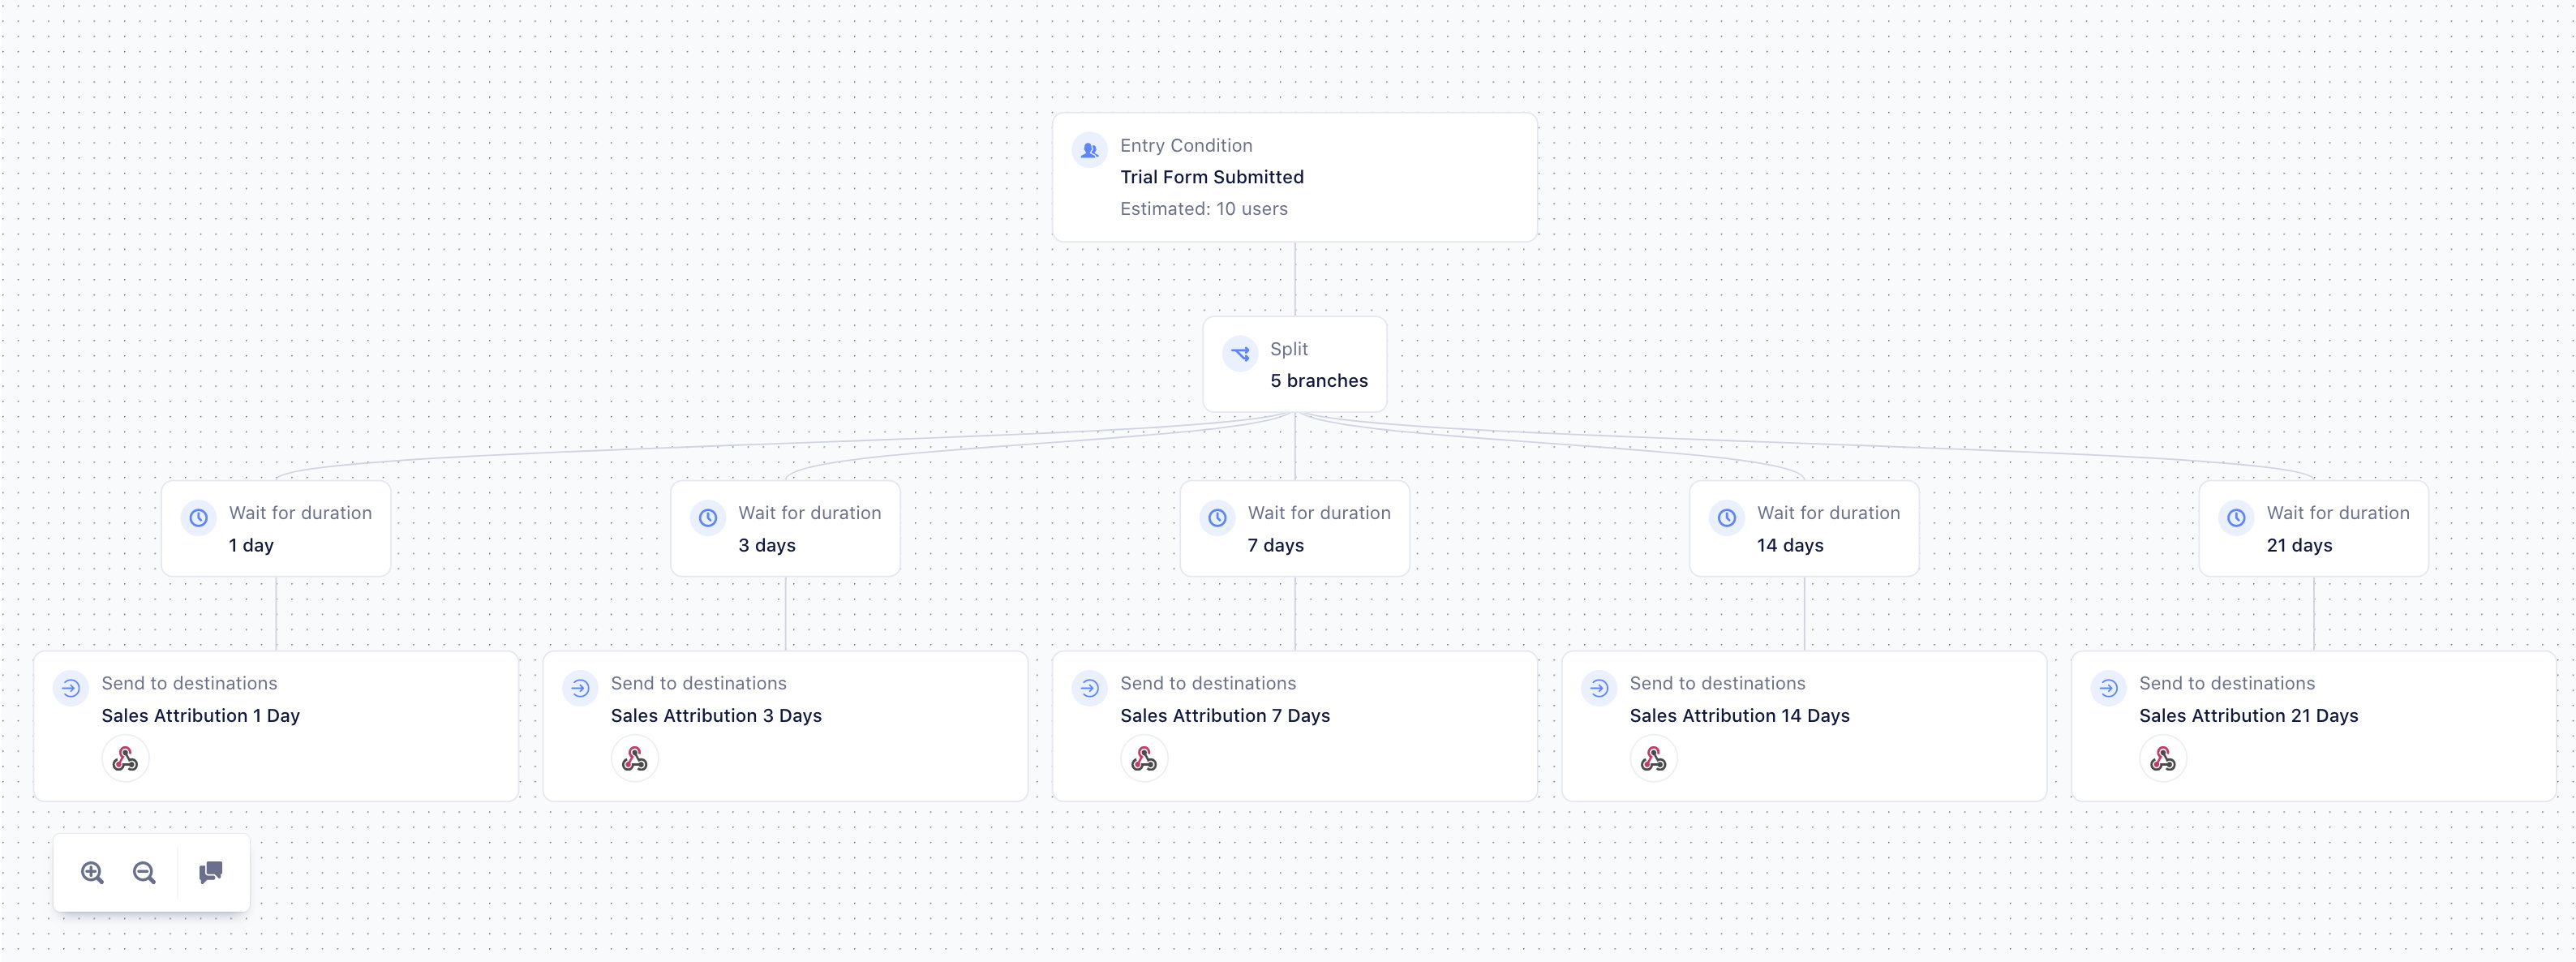 Personas Journey with 5 branches. Same webhook